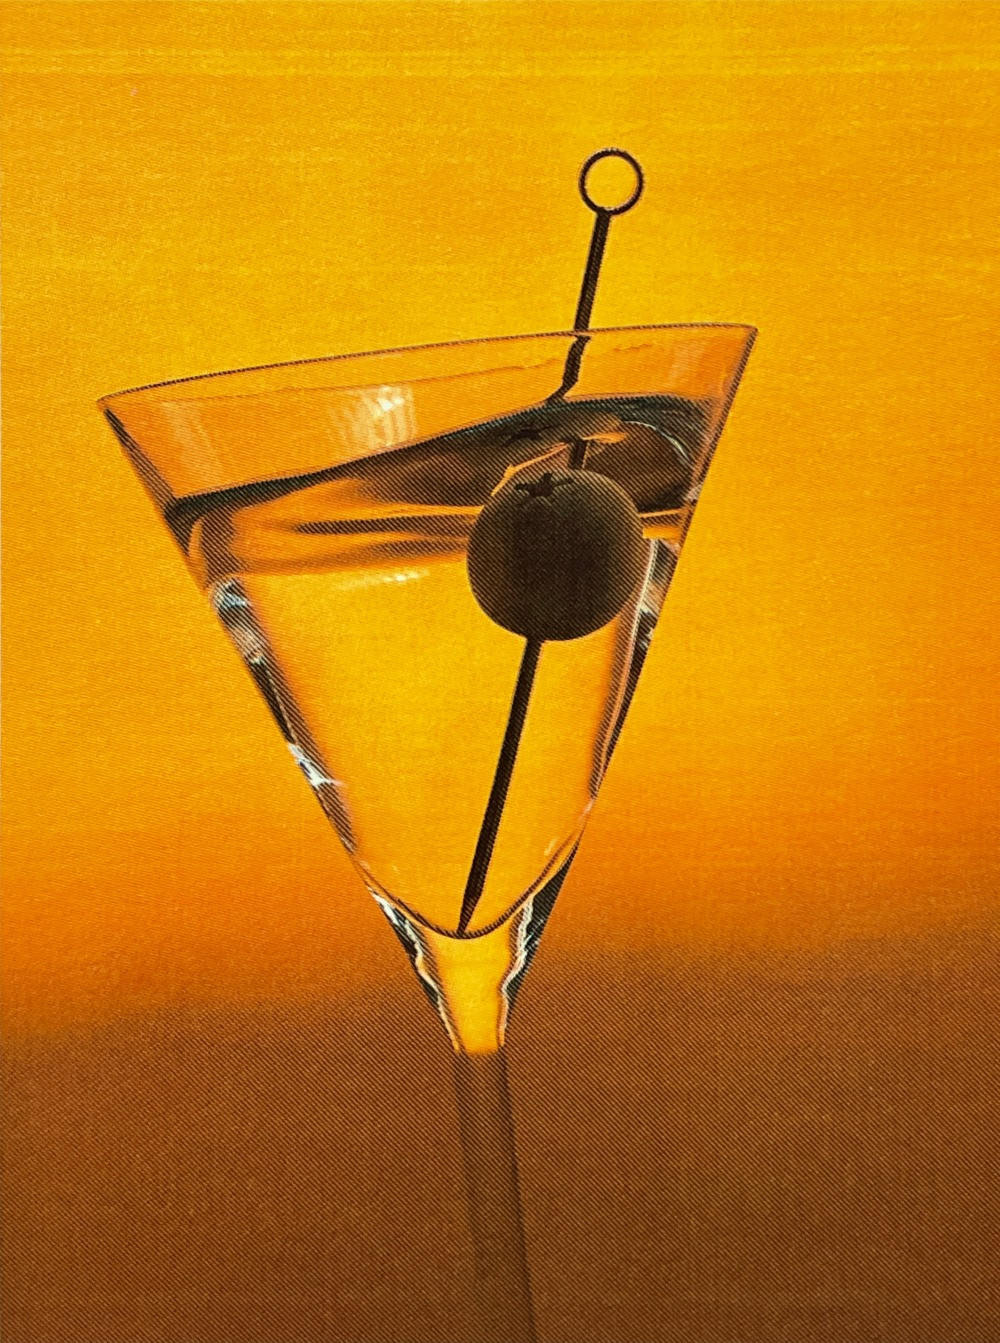 Reverse martini with olive